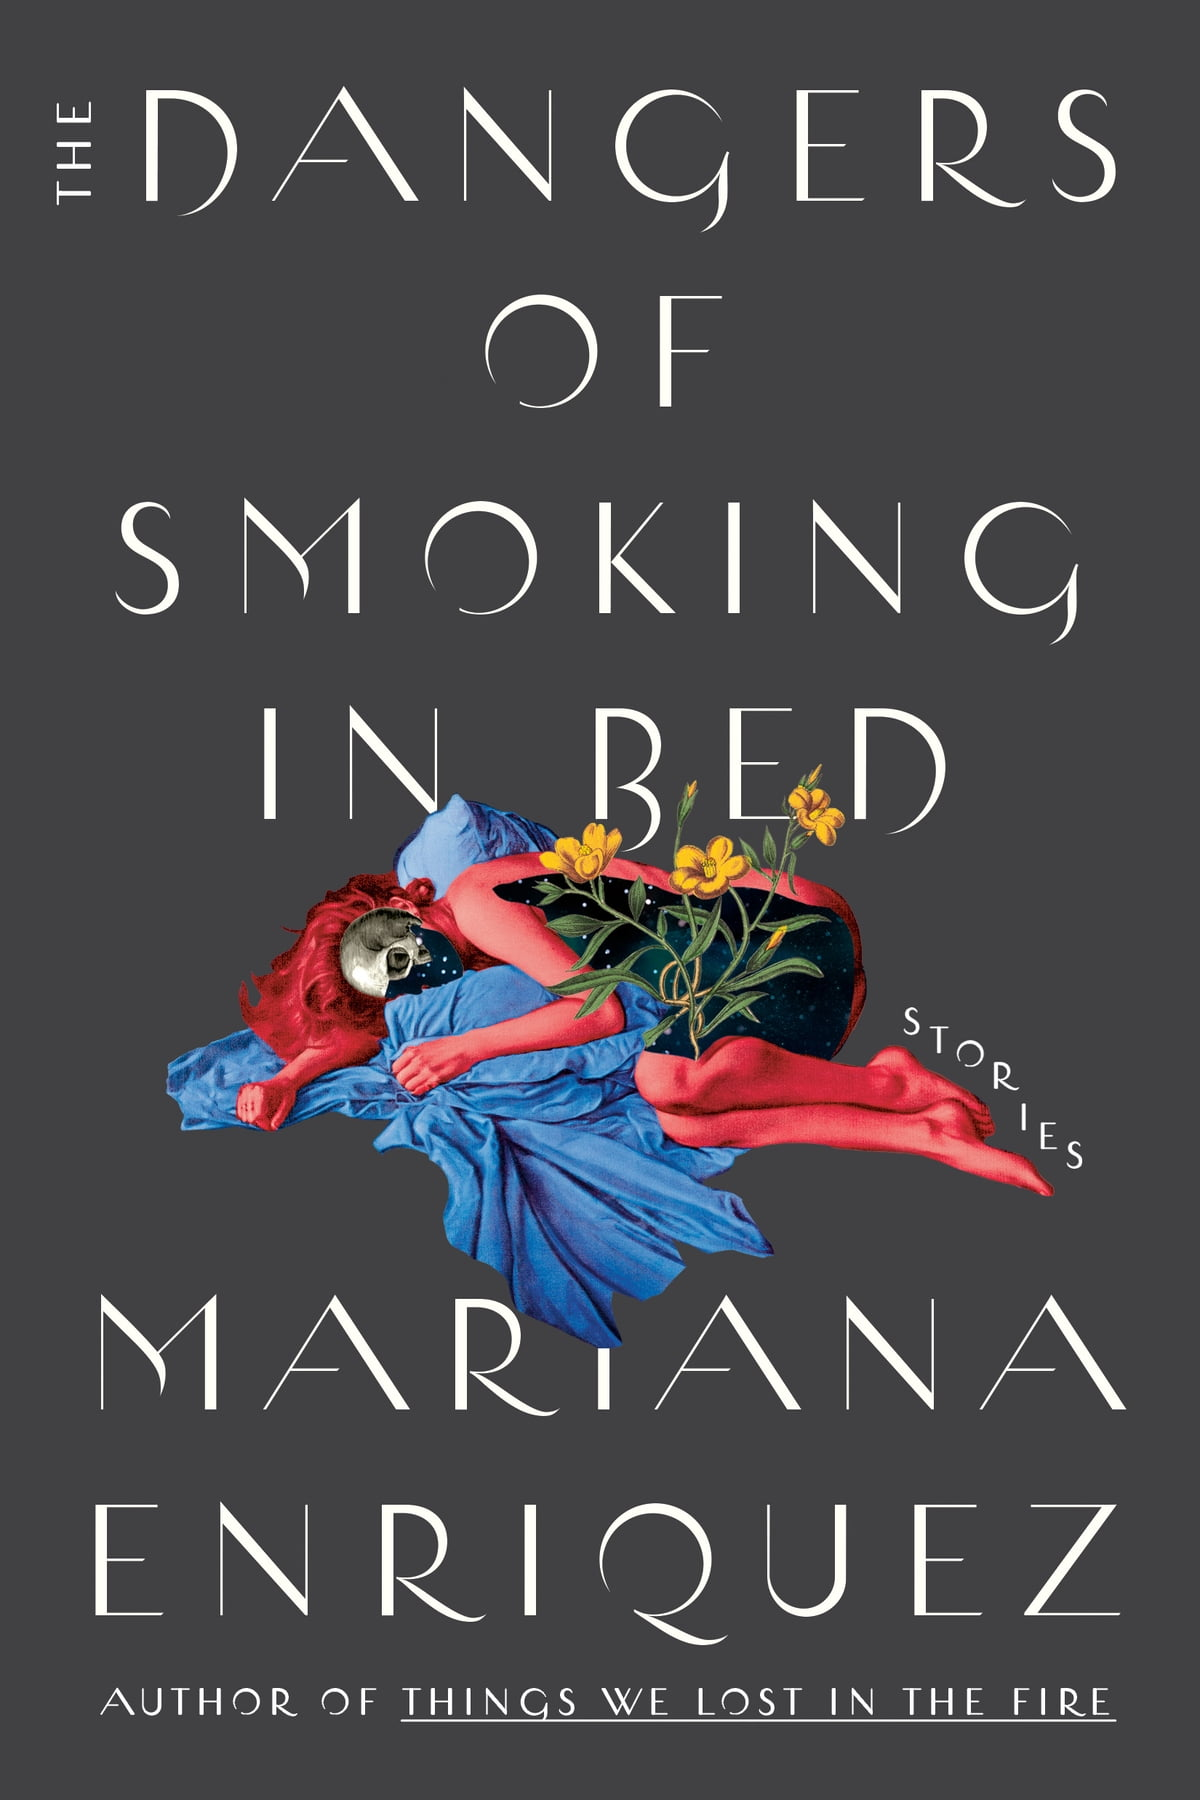 The Dangers of Smoking in Bed eBook by Mariana Enriquez - 9780593134085 |  Rakuten Kobo United States